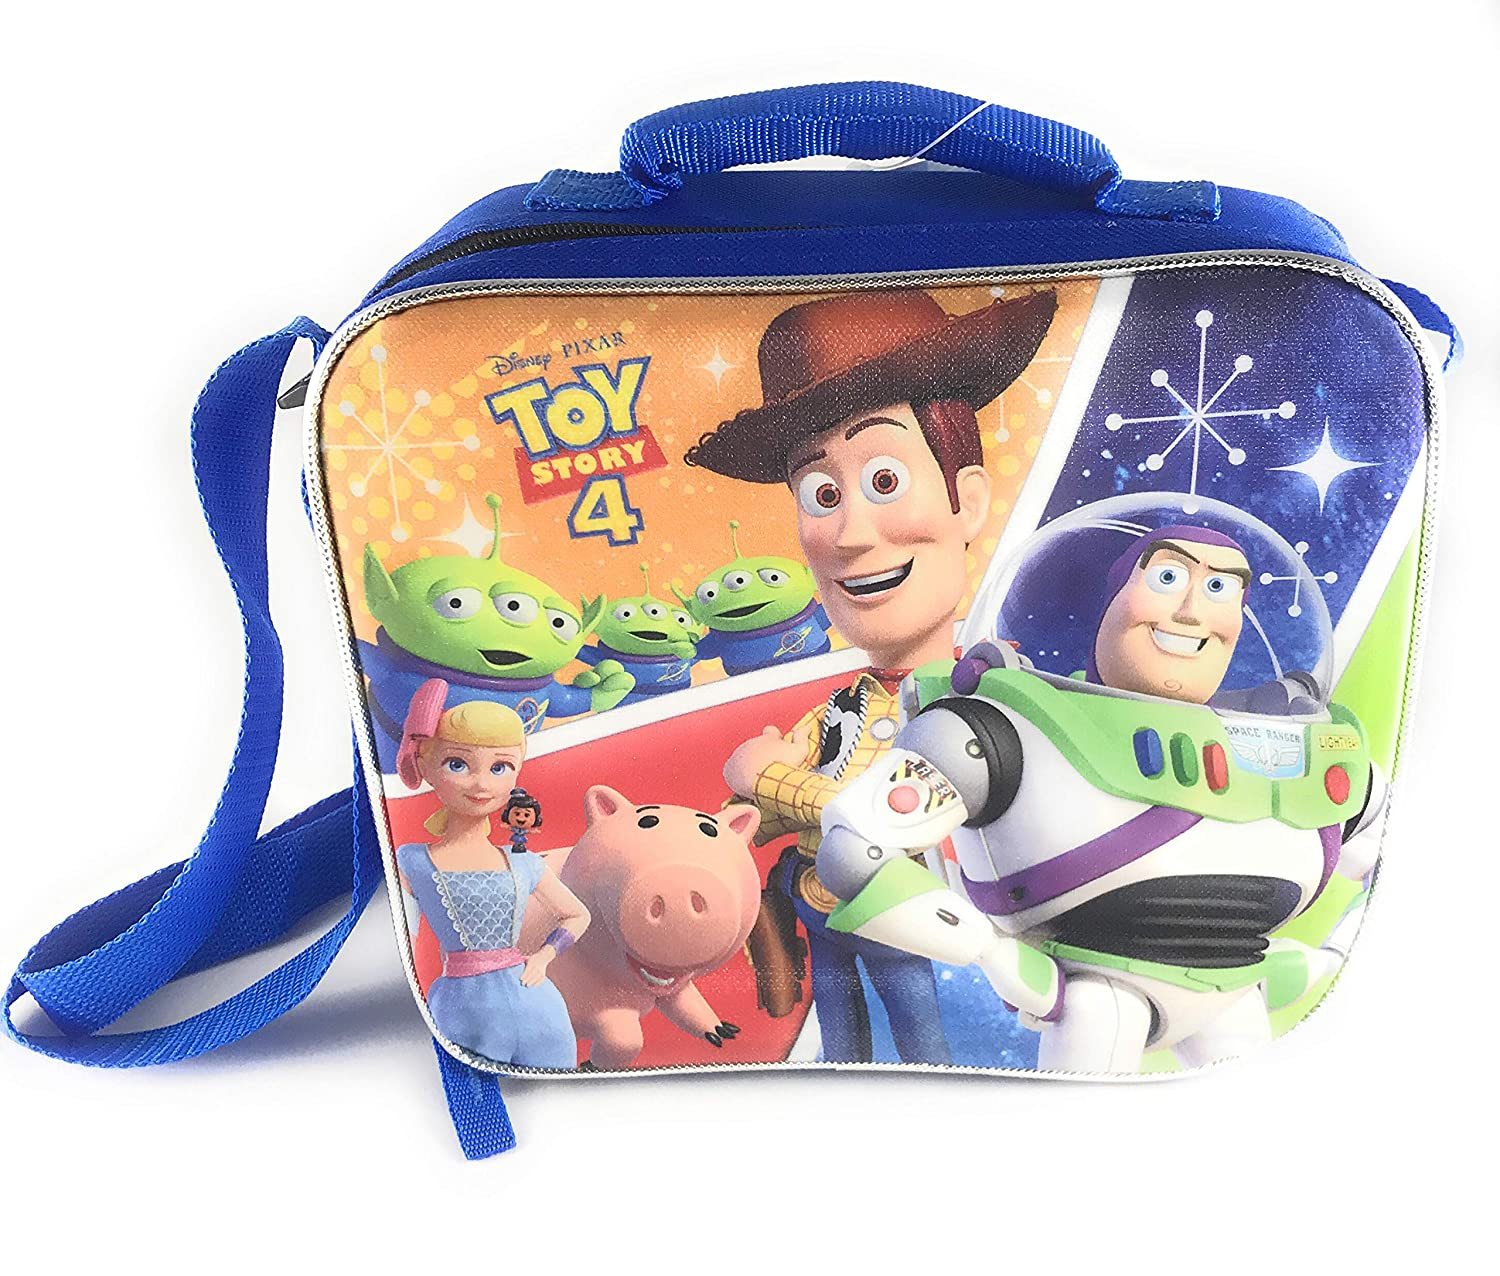 Bundle Includes Backpack Pencil Sharpener Lunchbox Folder and More Toy Story 4 Backpack /& Back to School Supply Set Pencils Eraser